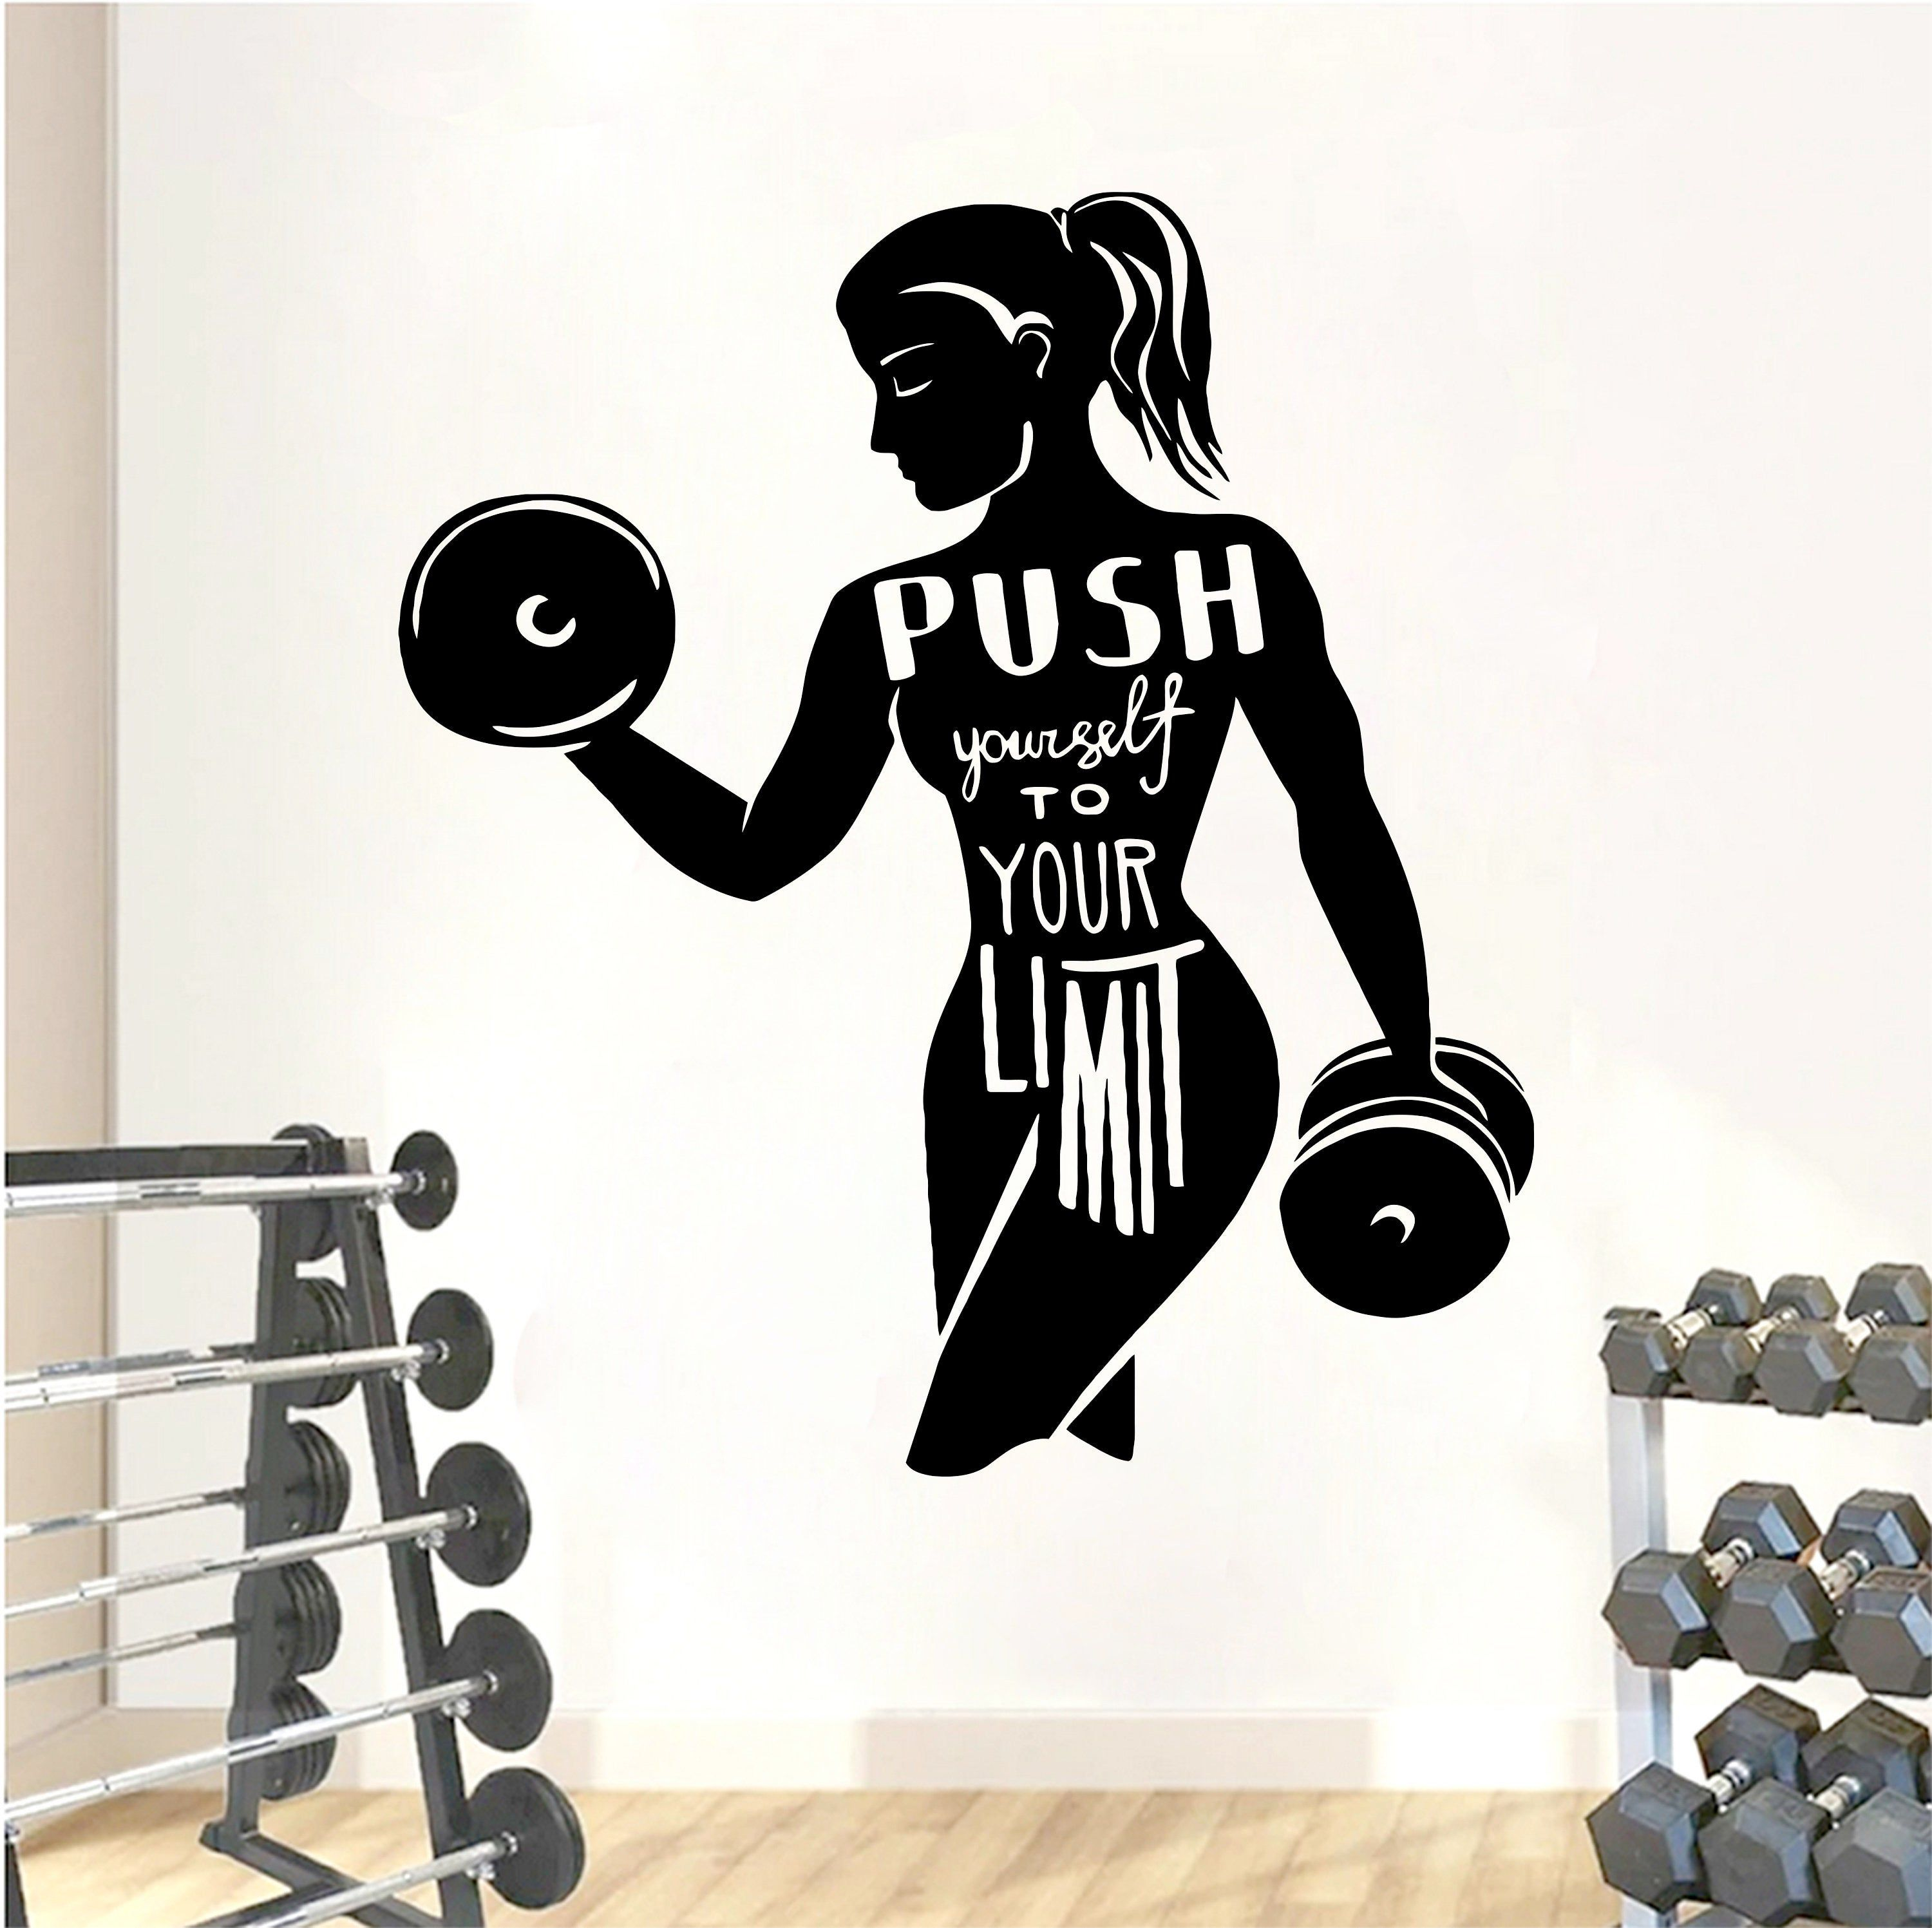 Fitness Wall Decal Workout Wall Decal Gym Wall Decor Etsy Gym Wall Decor Wall Decals Gym Wall Decal